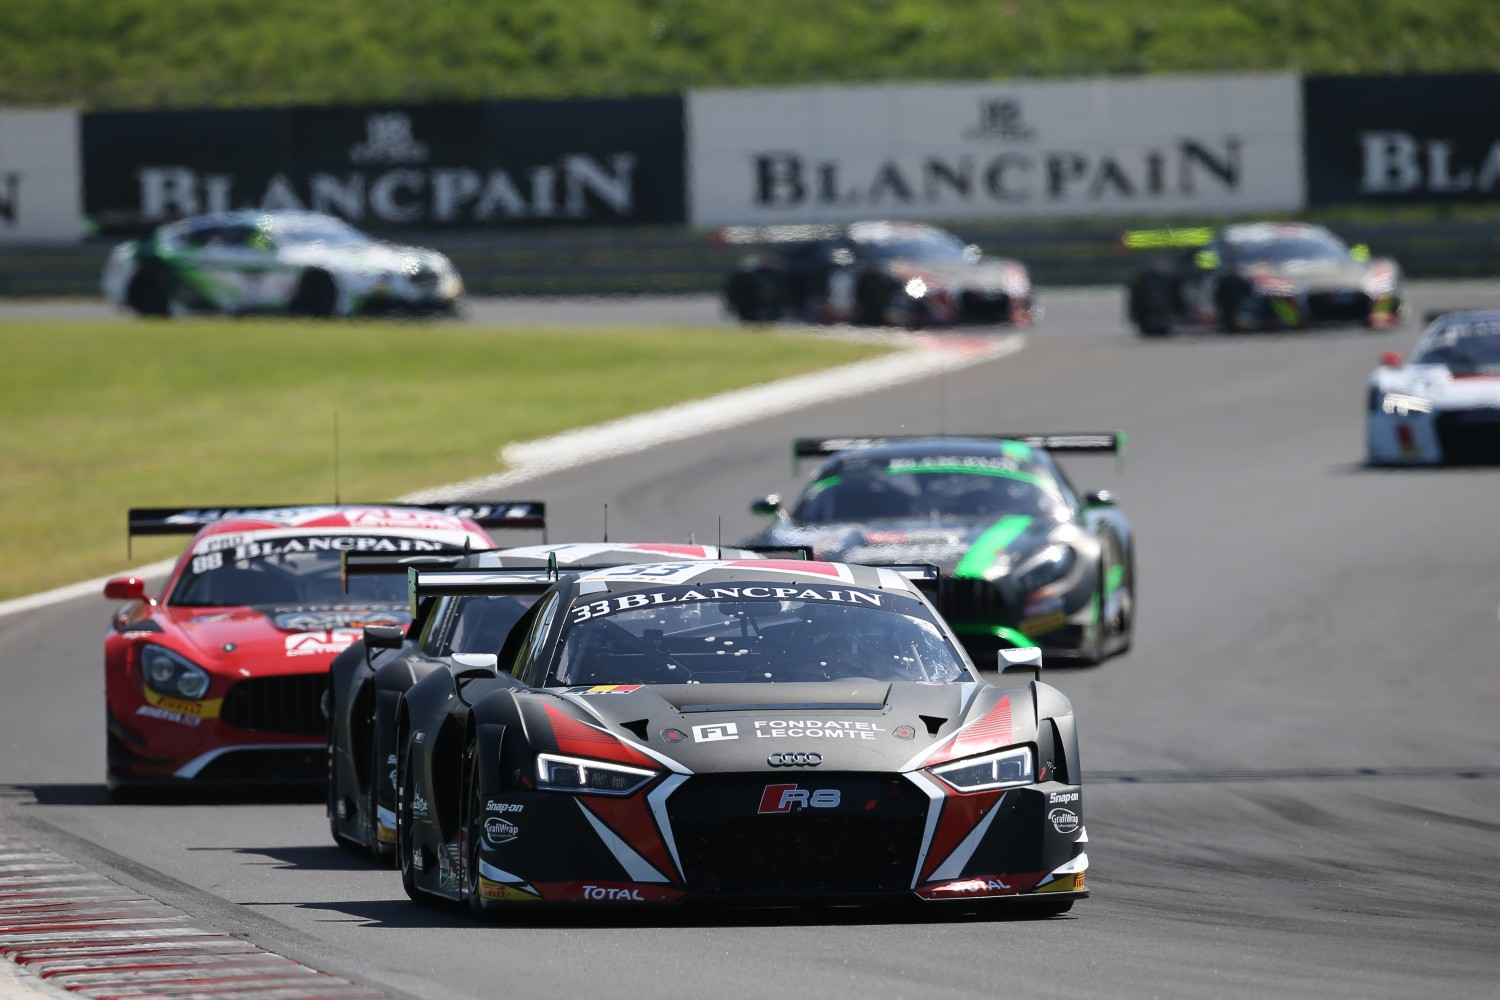 2016 Blancpain GT Series season finale promises to be unpredictable